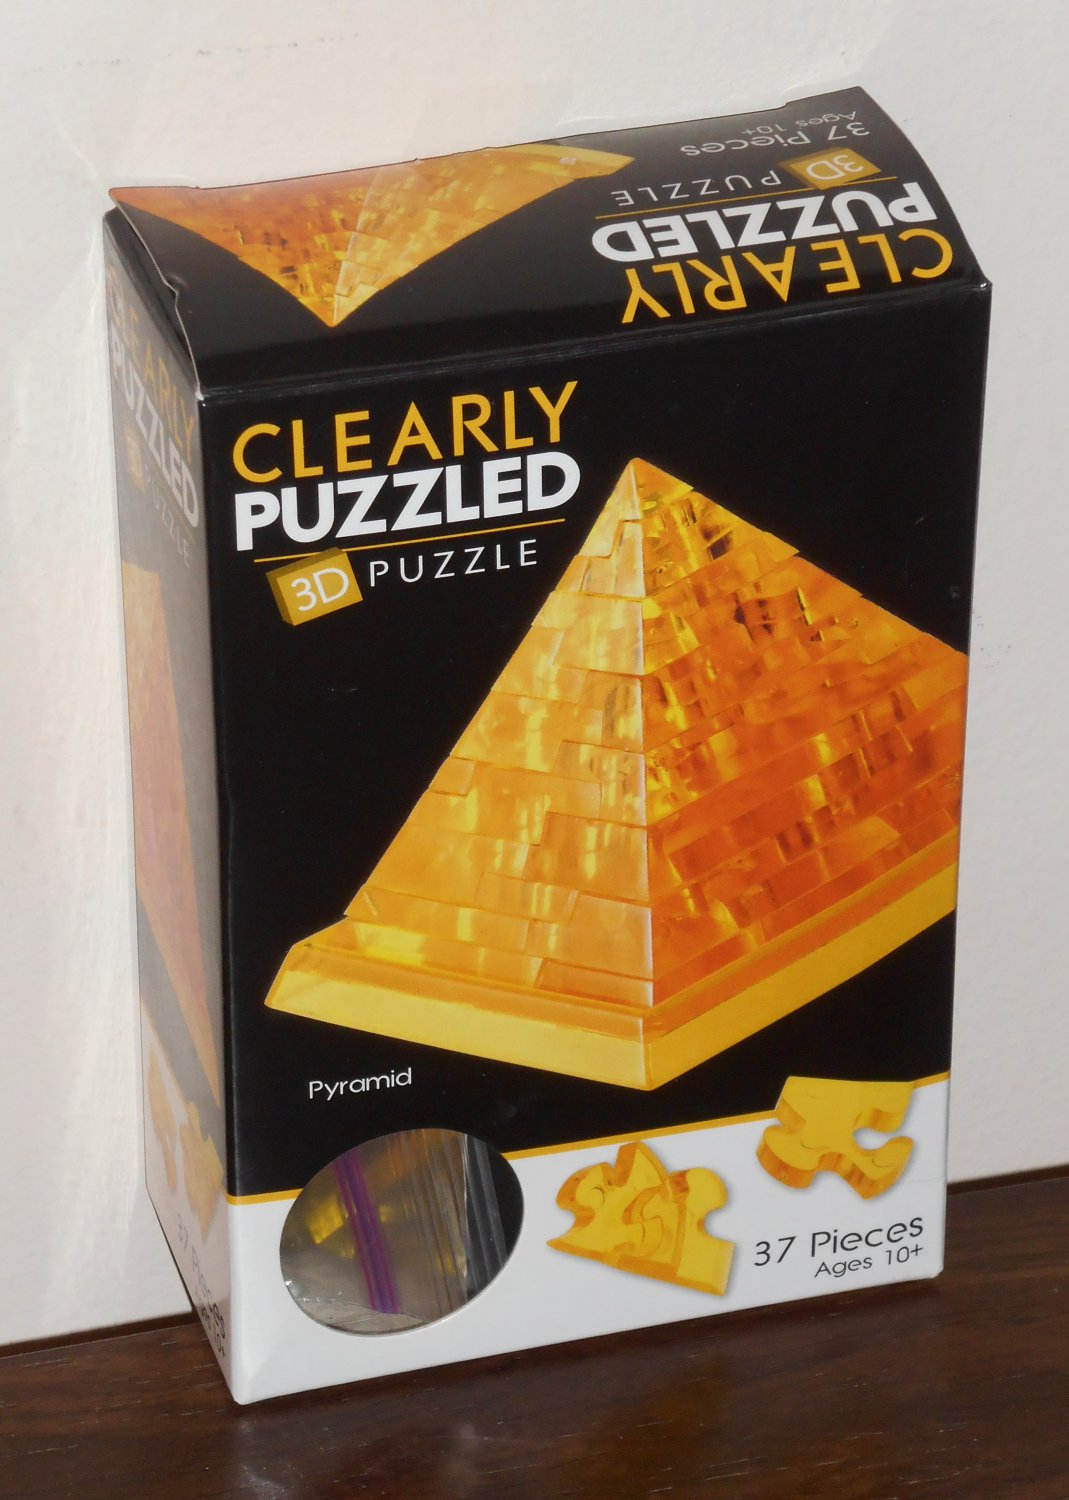 Clearly Puzzled 3D Plastic Puzzle Pyramid 37 Pieces Complete